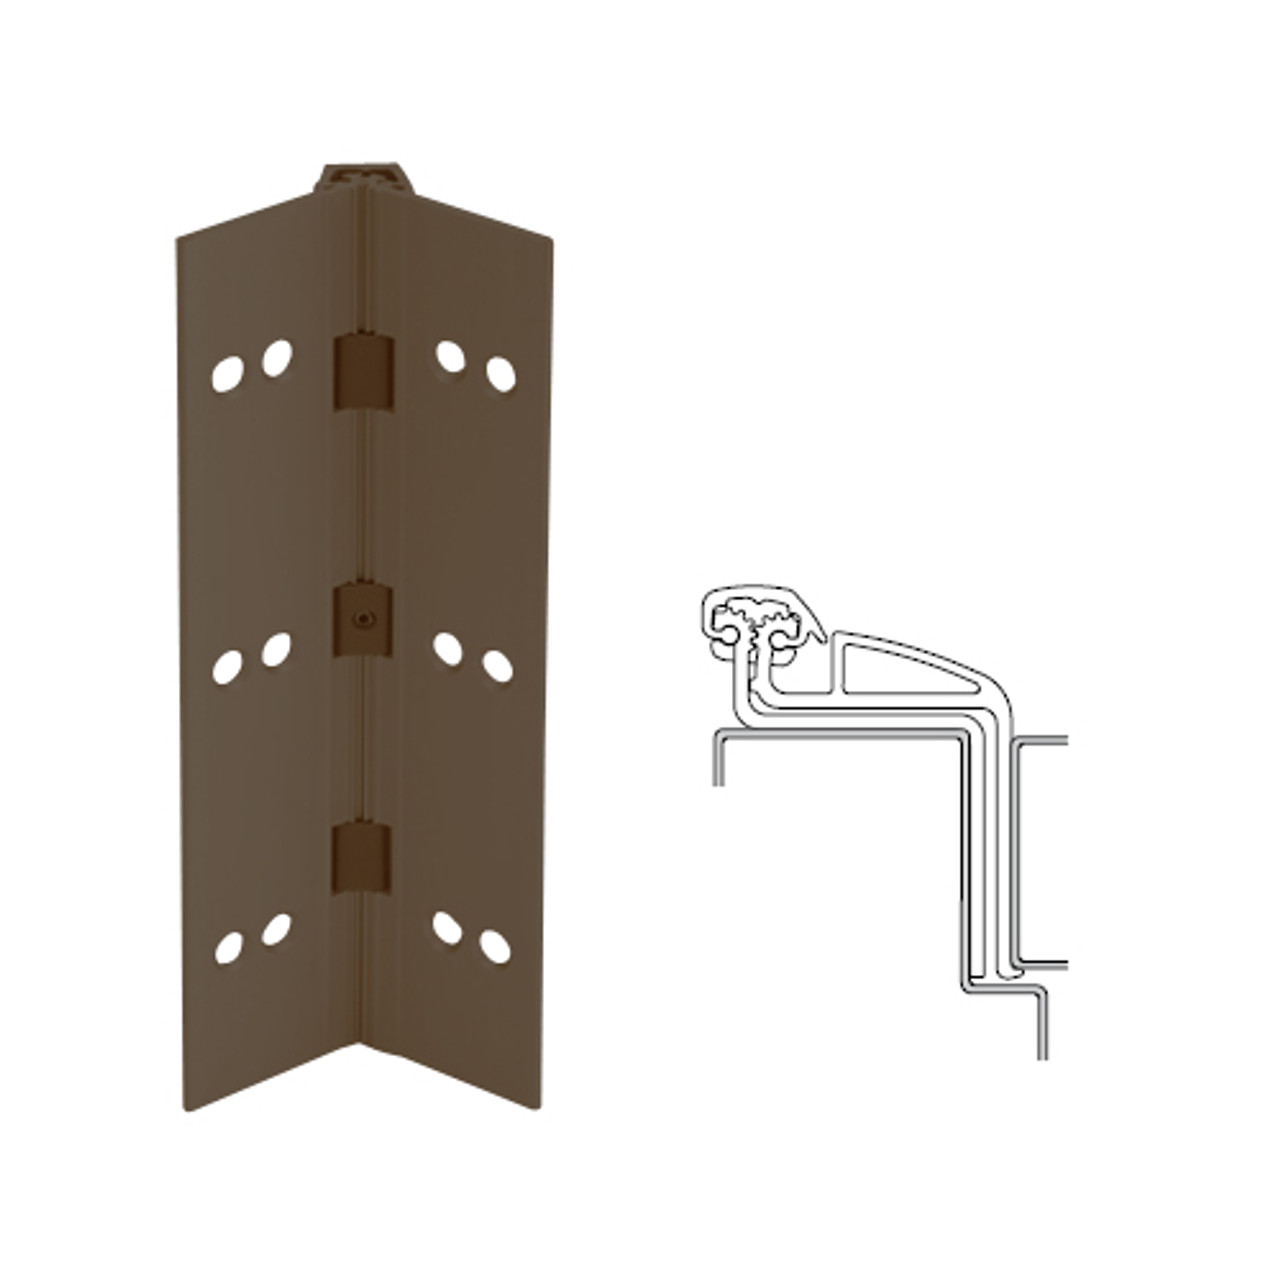 041XY-313AN-83-SECWDHM IVES Full Mortise Continuous Geared Hinges with Security Screws - Hex Pin Drive in Dark Bronze Anodized